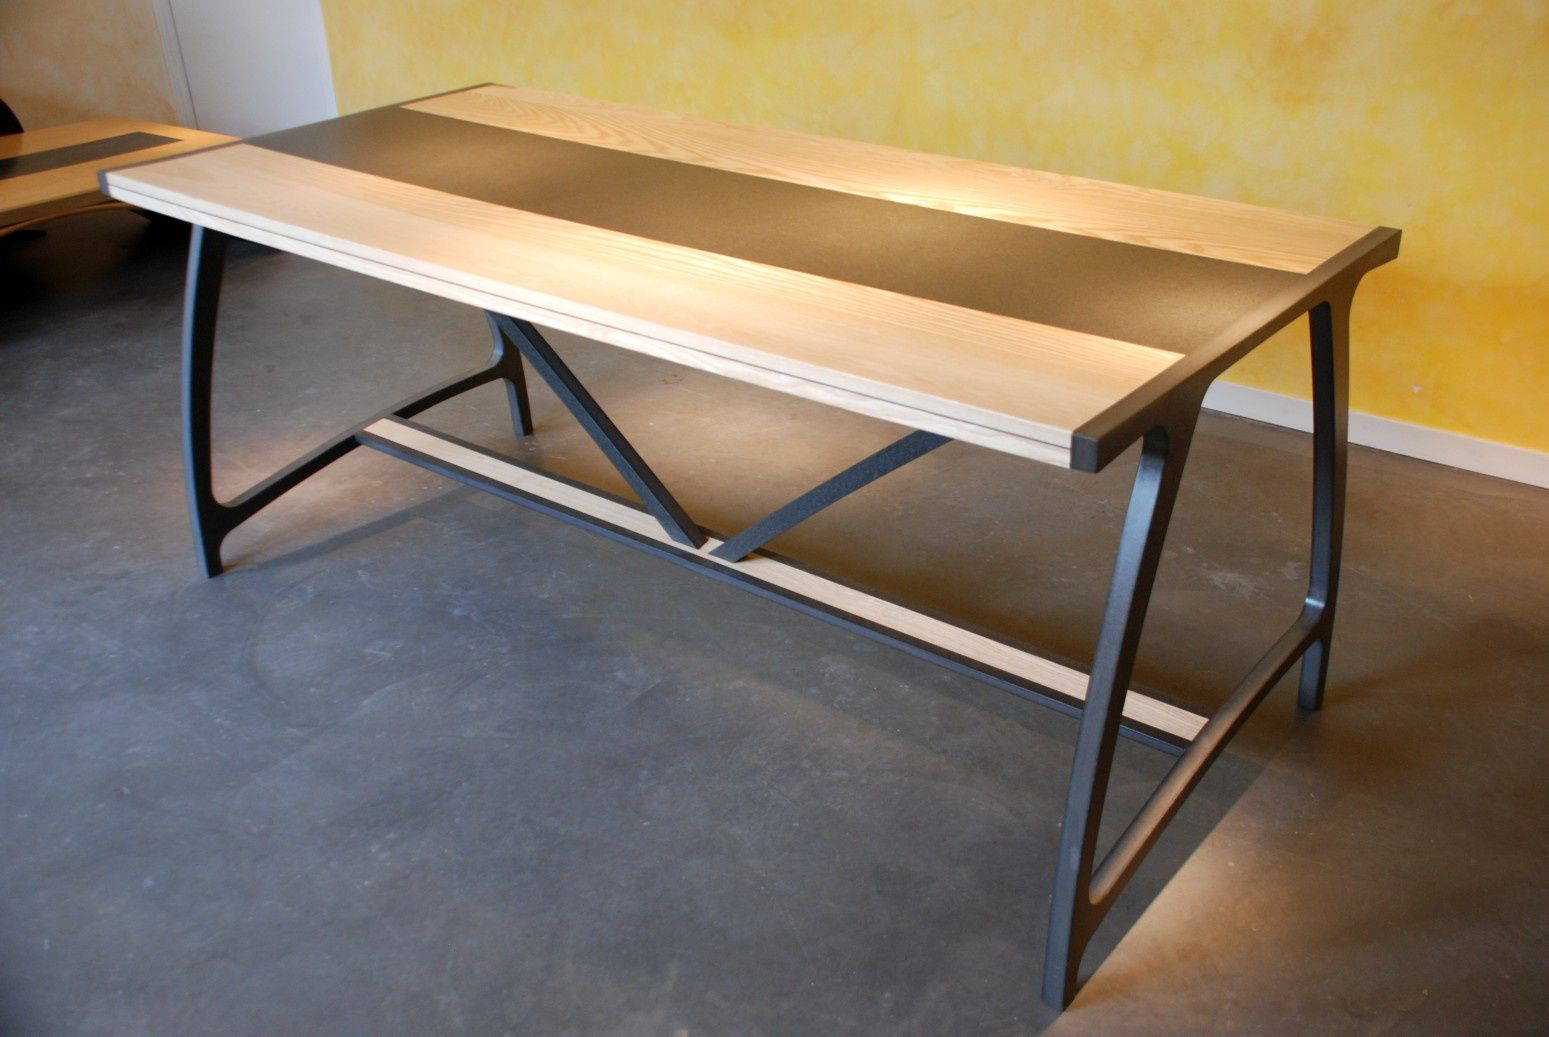 Table salle manger teck design for Table de salle a manger teck